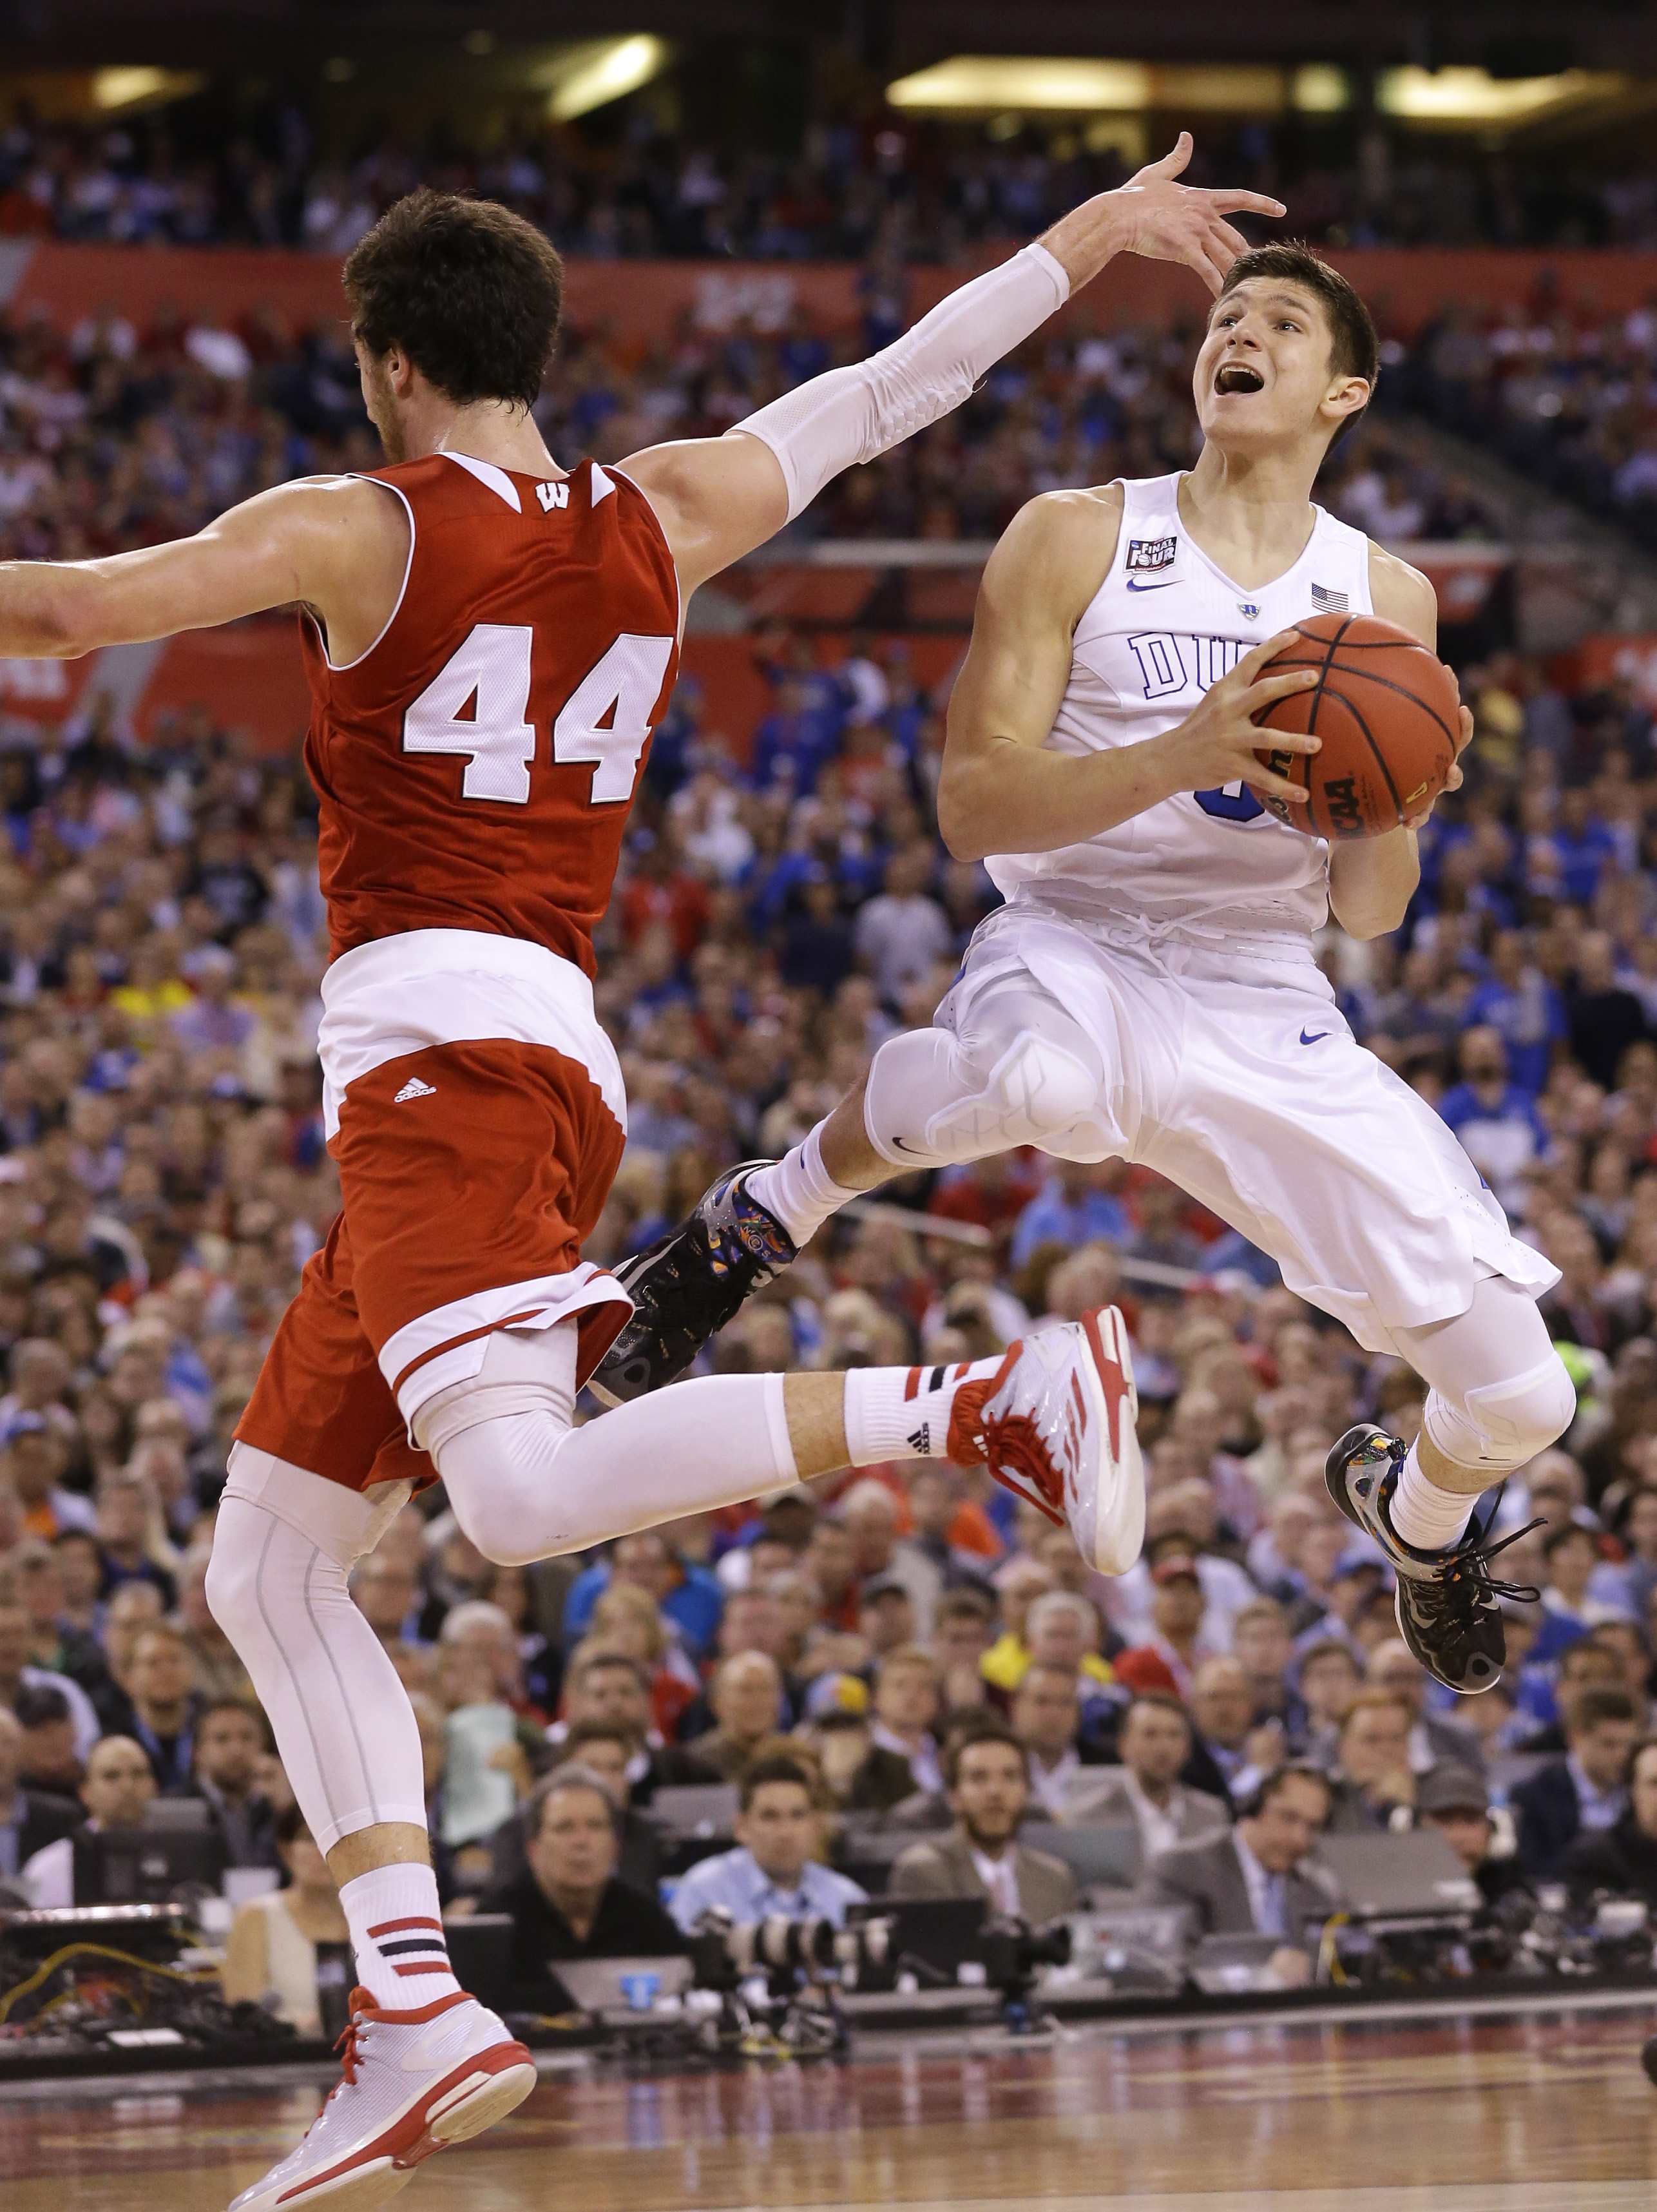 FILE - In this April 6, 2015, file photo, Duke's Grayson Allen drives to the basket as Wisconsin's Frank Kaminsky defends during the championship game of the NCAA college basketball men's tournament in Indianapolis. Coach Mike Krzyzewski went with a hunch